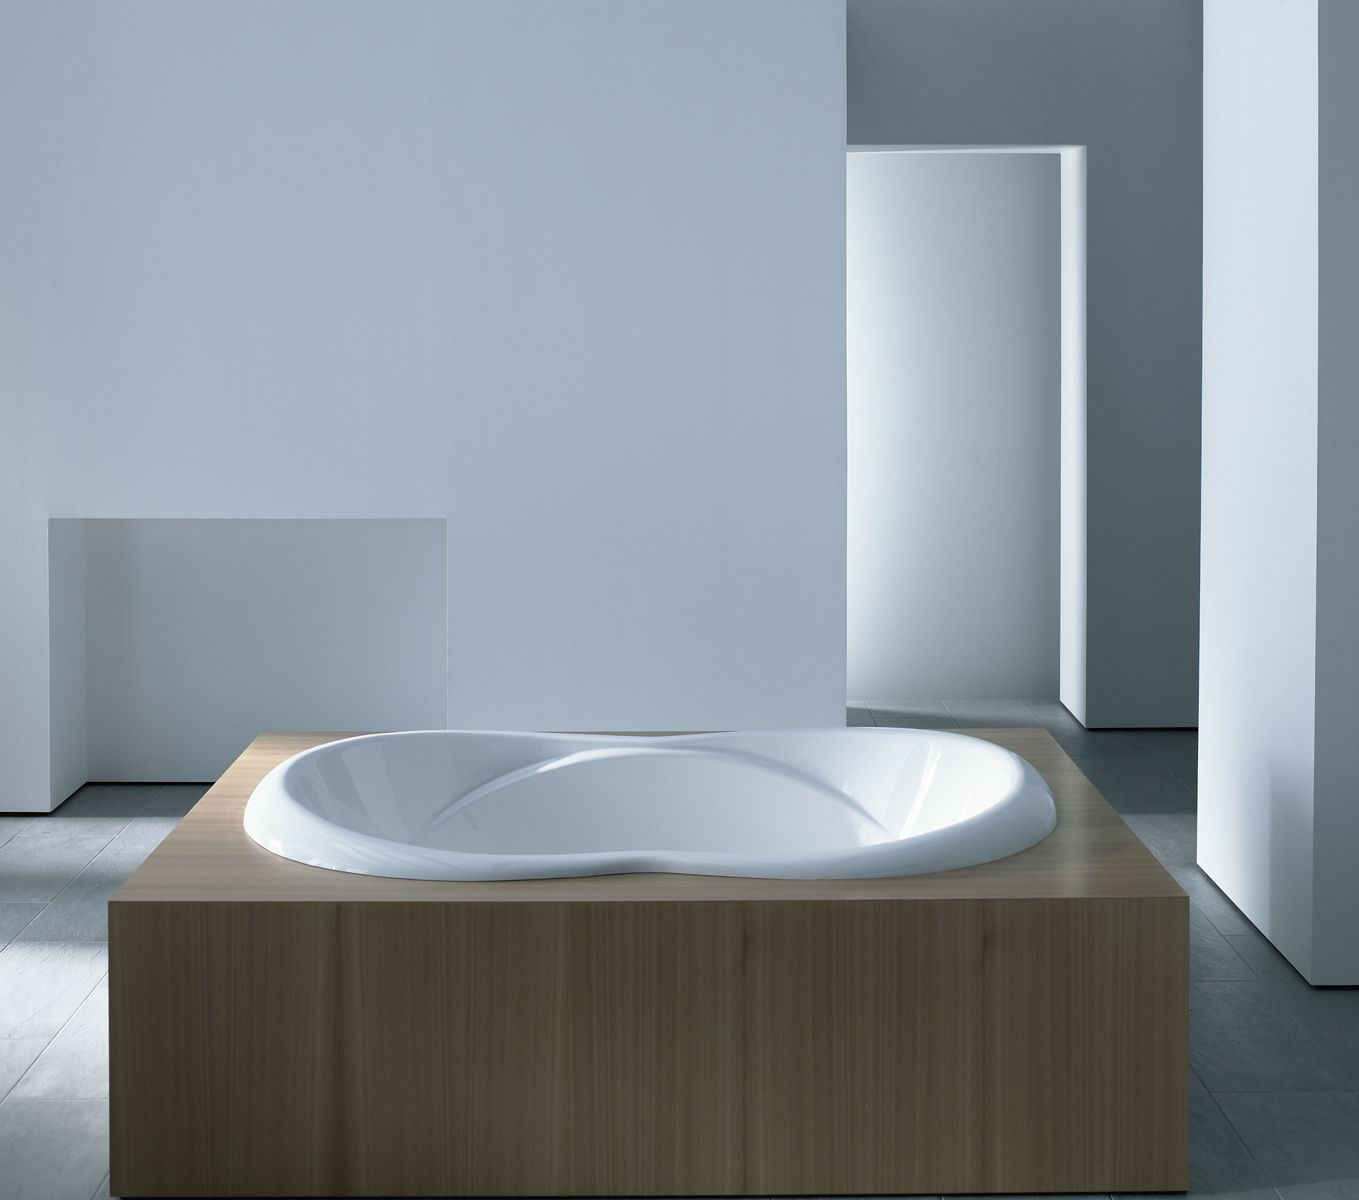 Hytec Bath And Shower Products